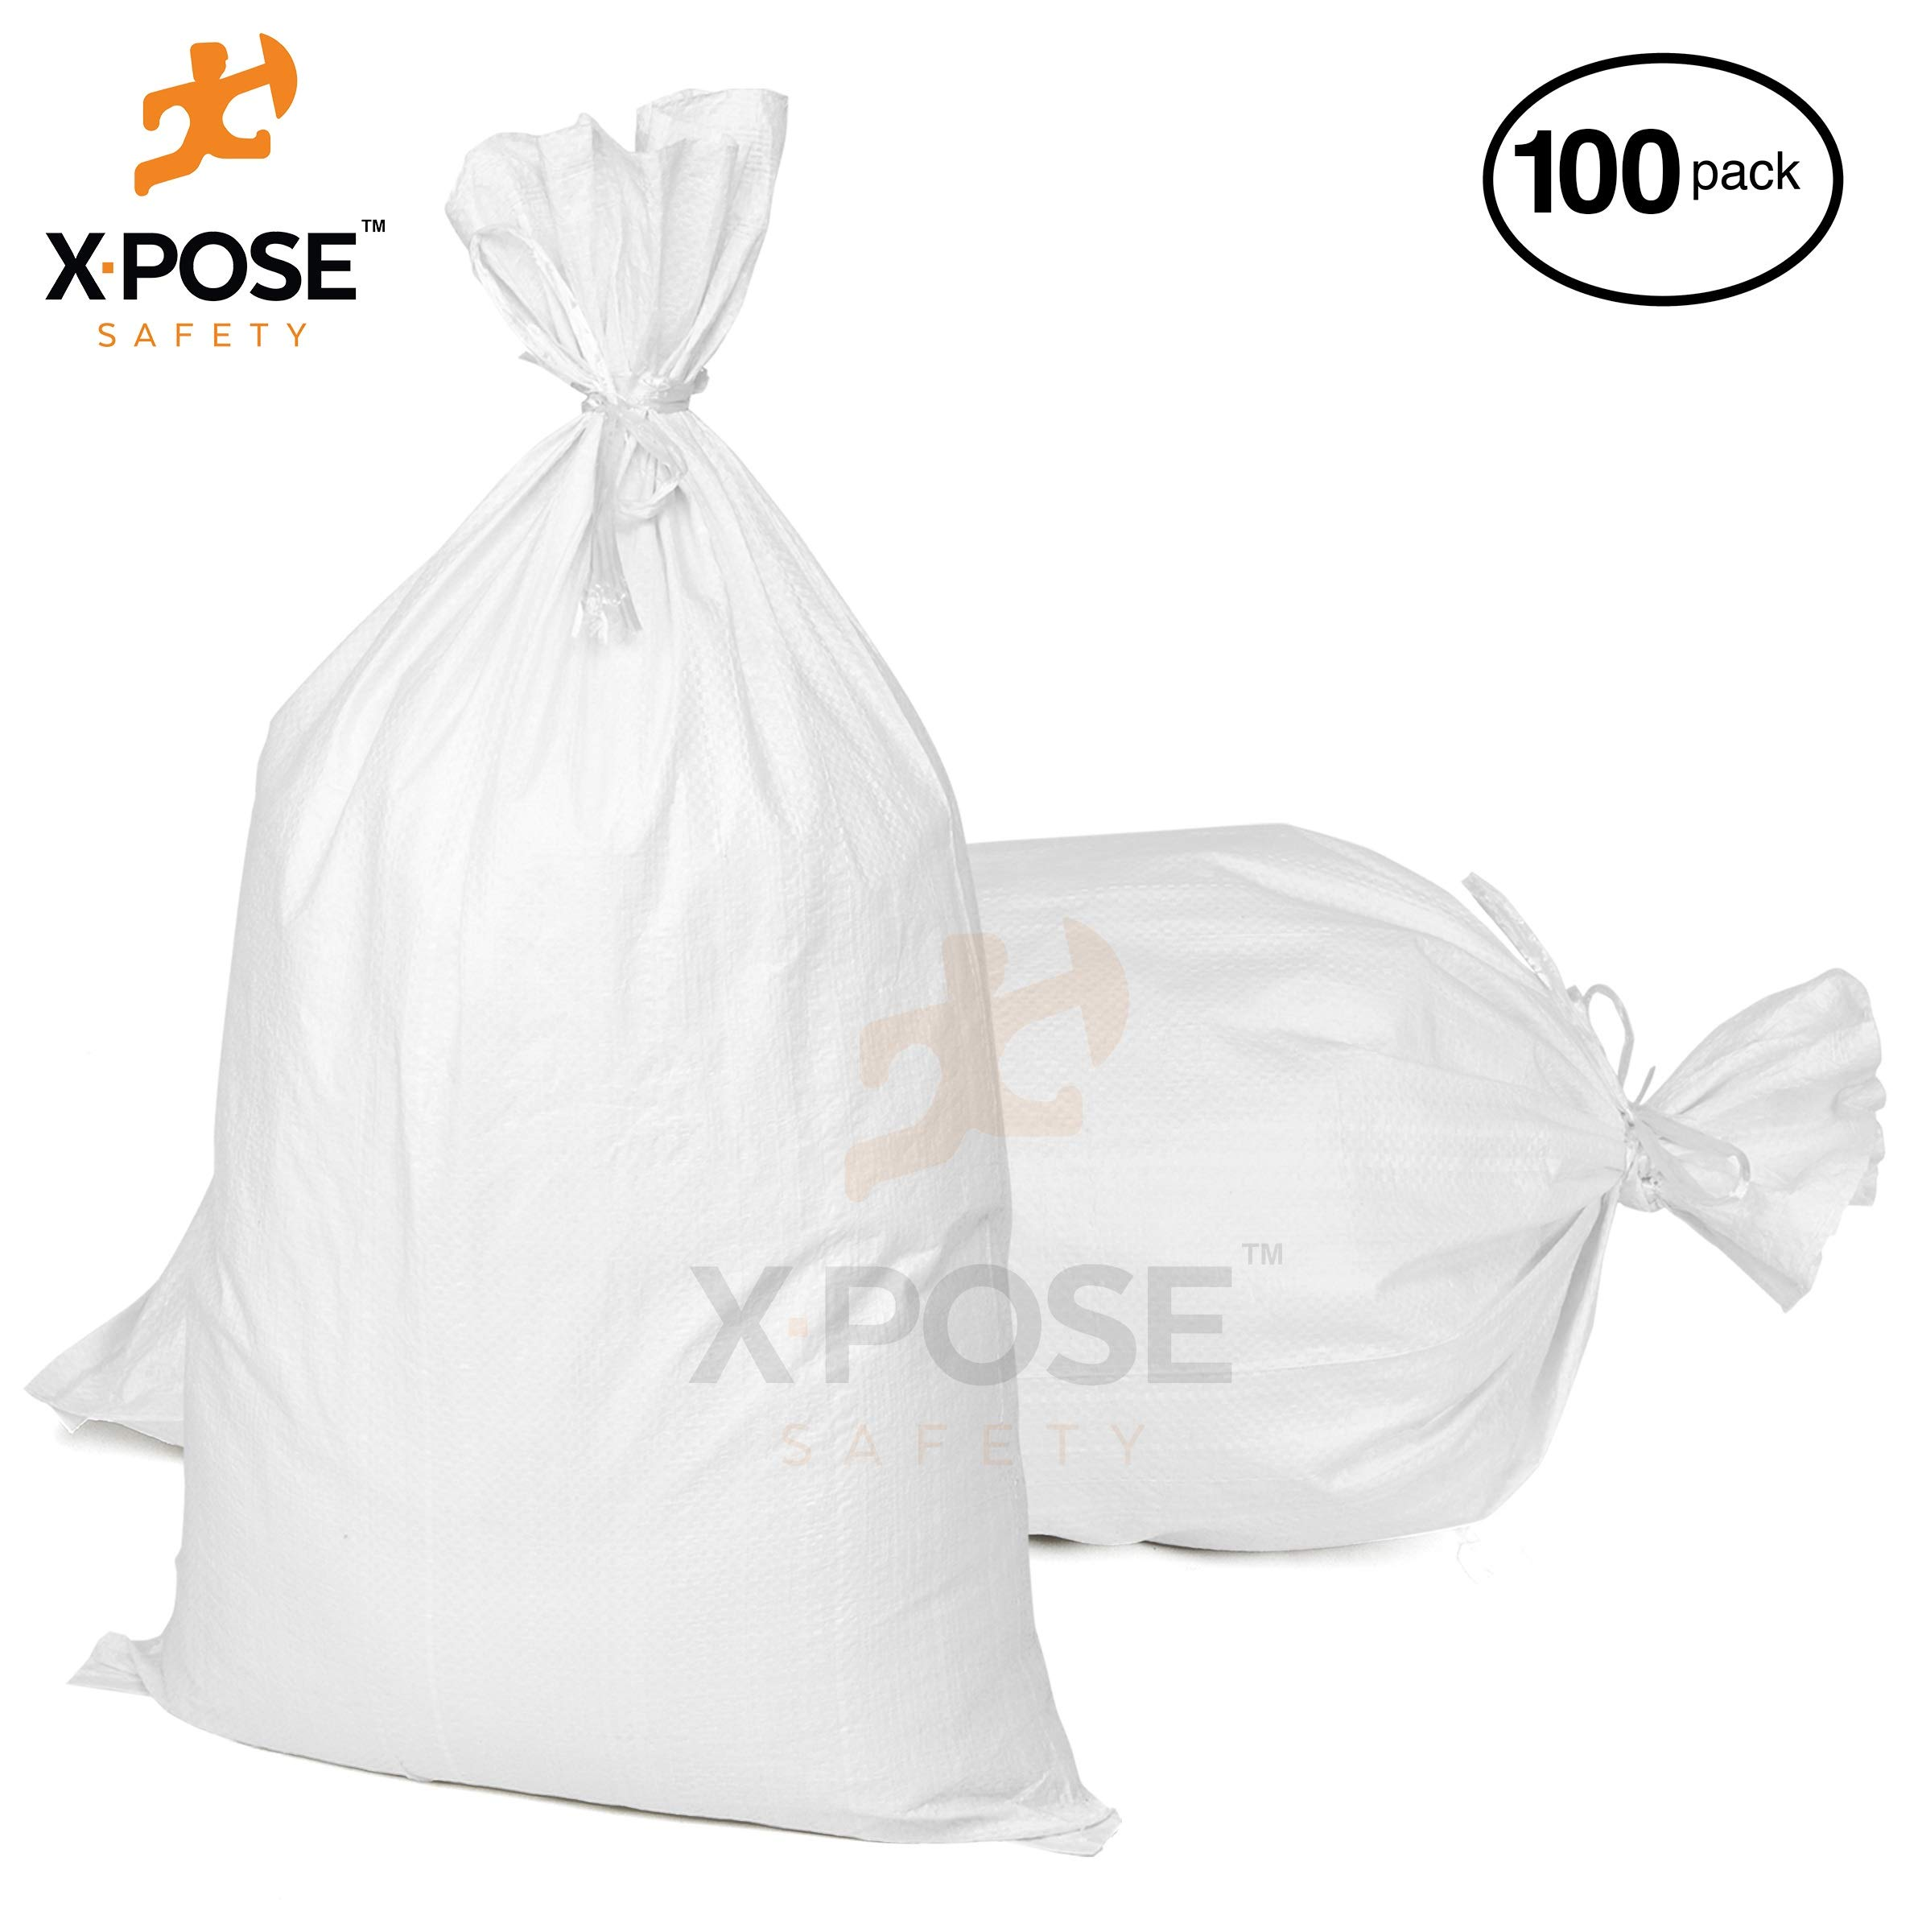 18''x30'' Empty Sand Bags, 100 Pack with Ties - Heavy Duty Woven Polypropylene, UV Sun Protection, Dust, Water and Oil Resistant - Home and Industrial - Floods, Photography and More - by Xpose Safety